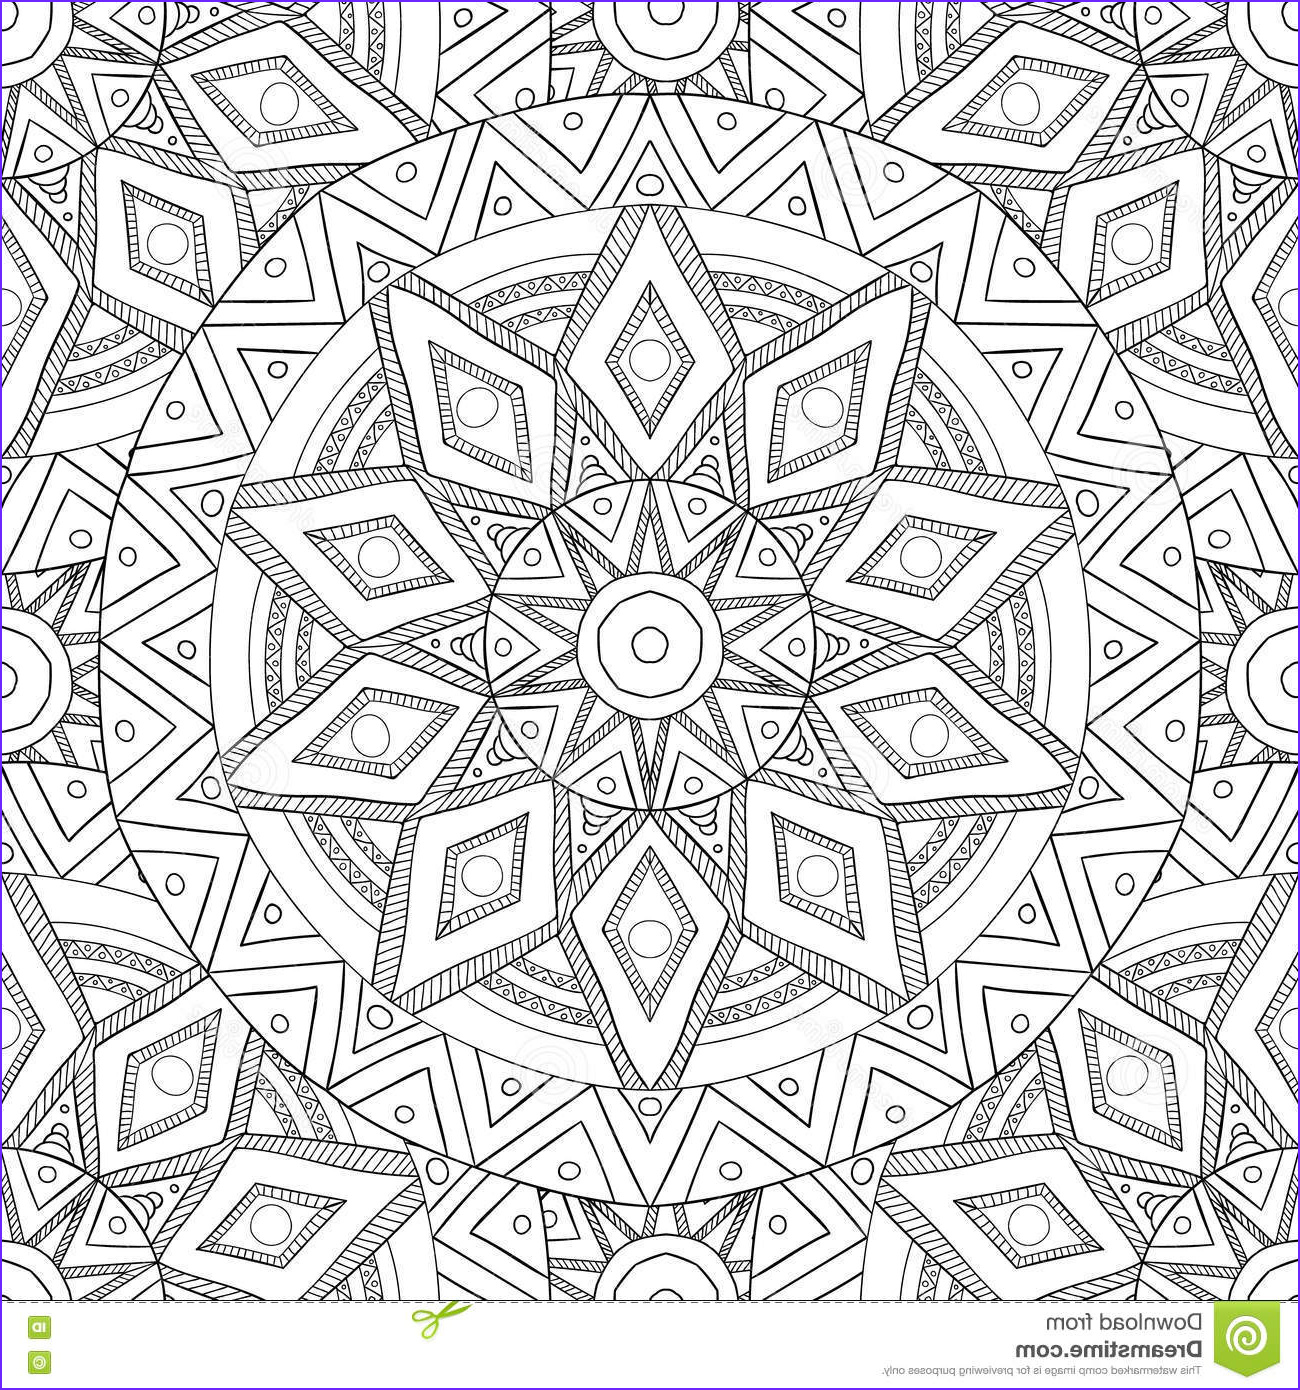 stock illustration coloring pages adults decorative hand drawn doodle nature ornamental curl vector sketchy seamless pattern book mandala image